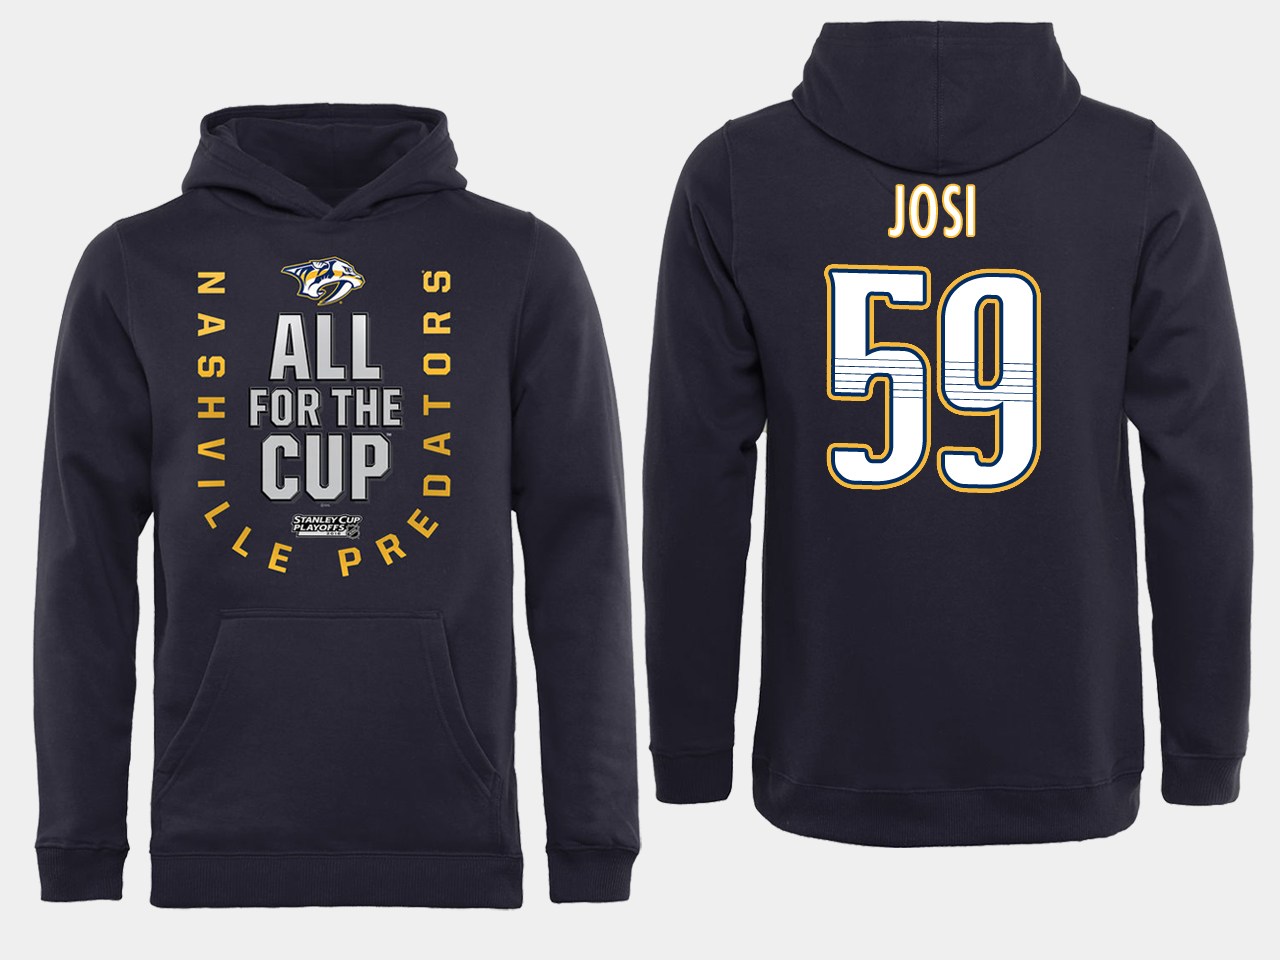 Men NHL Adidas Nashville Predators 59 Josi black ALL for the Cup hoodie